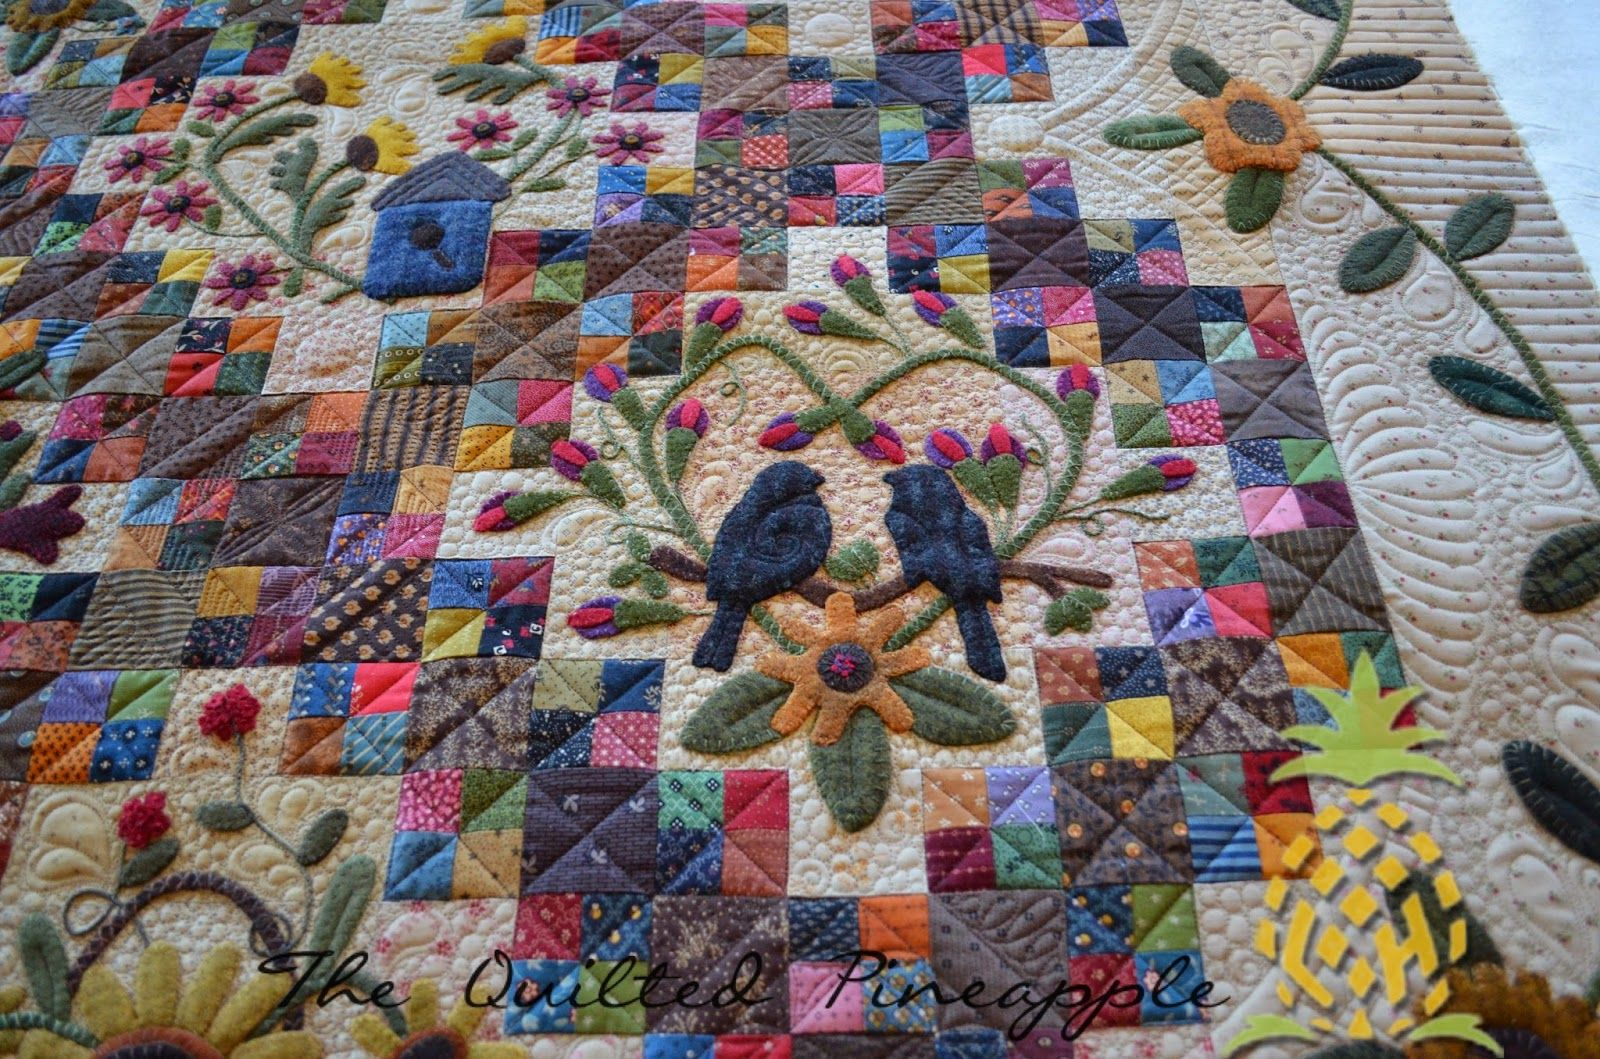 Join Me At The Quilting Beesunflower Gatherings